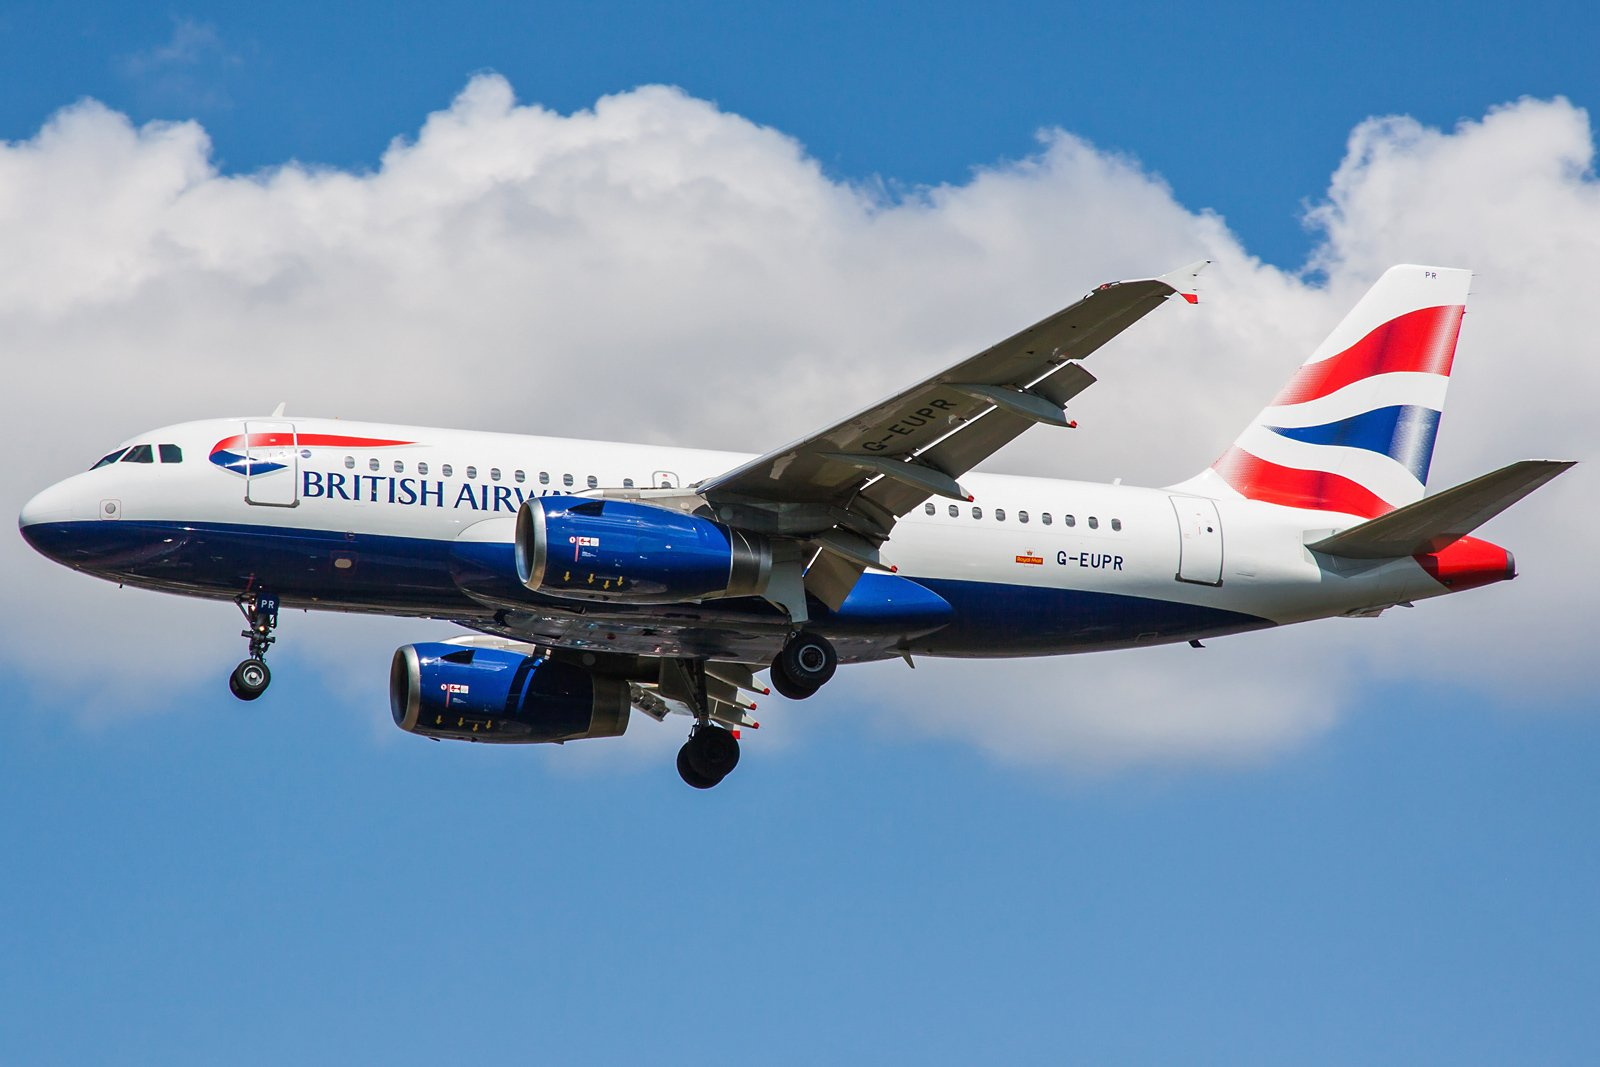 British Airways Airbus A319-131 G-EUPR